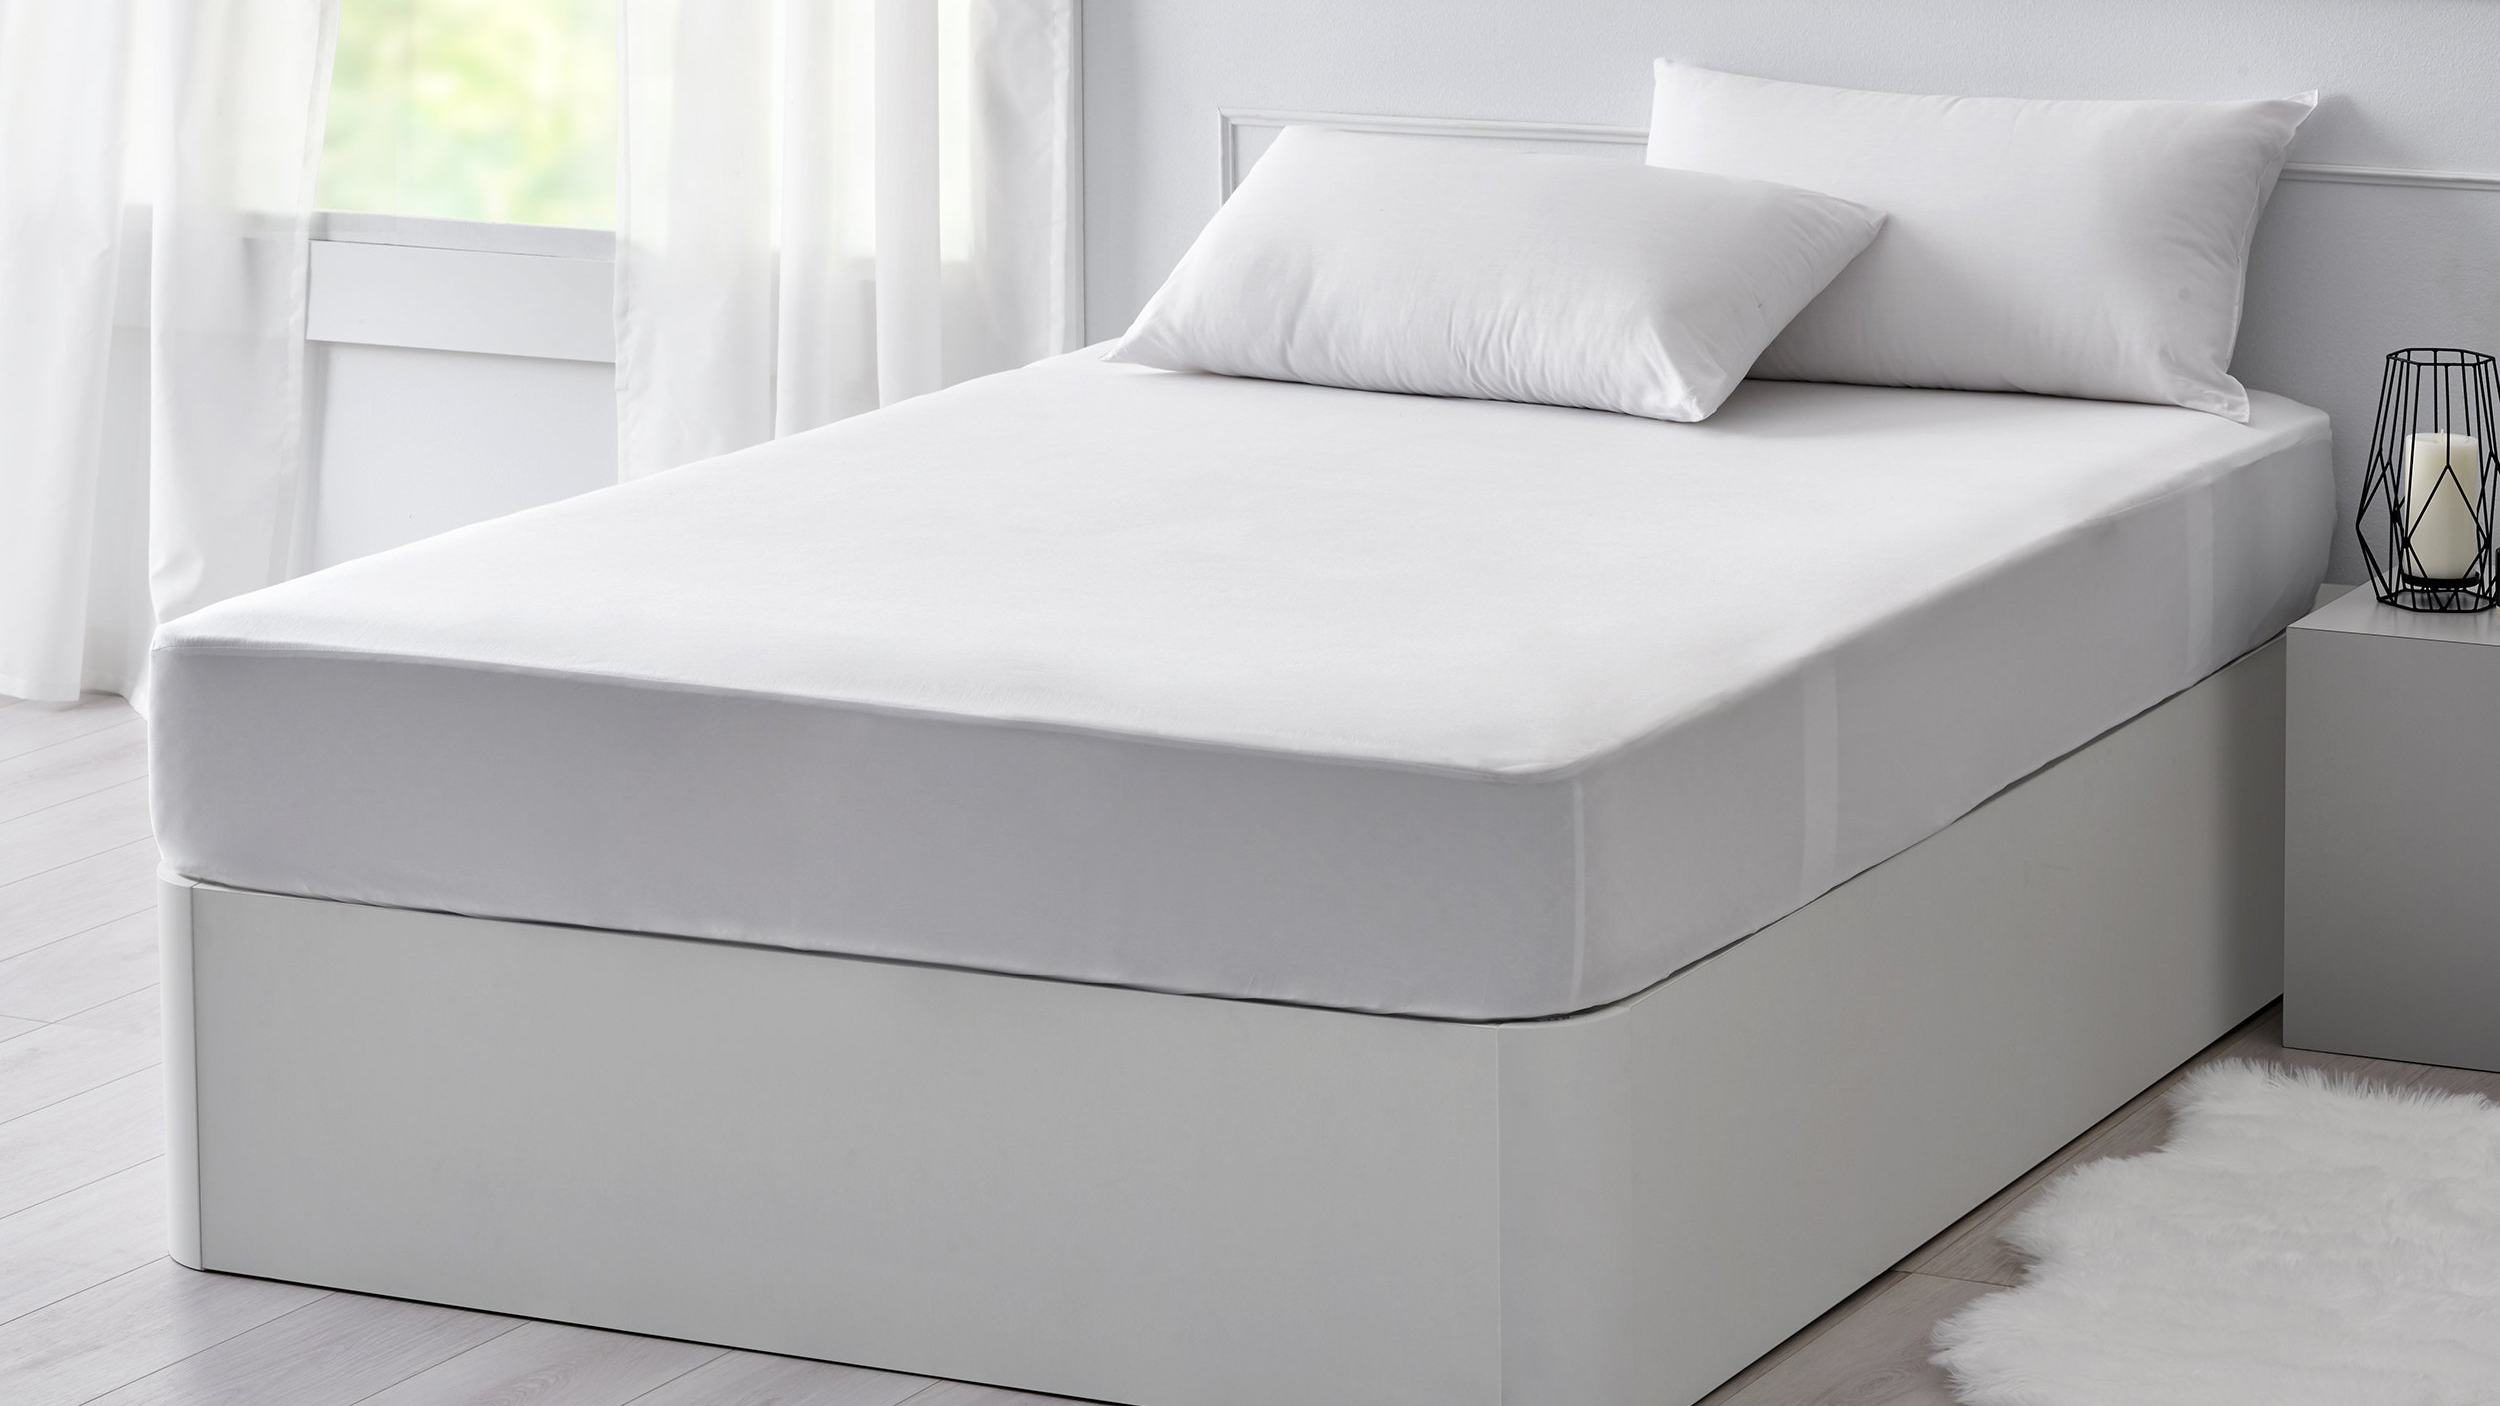 Super King Size Waterproof Mattress Protector The Best Mattress Protectors In 2019 Waterproof Cotton And